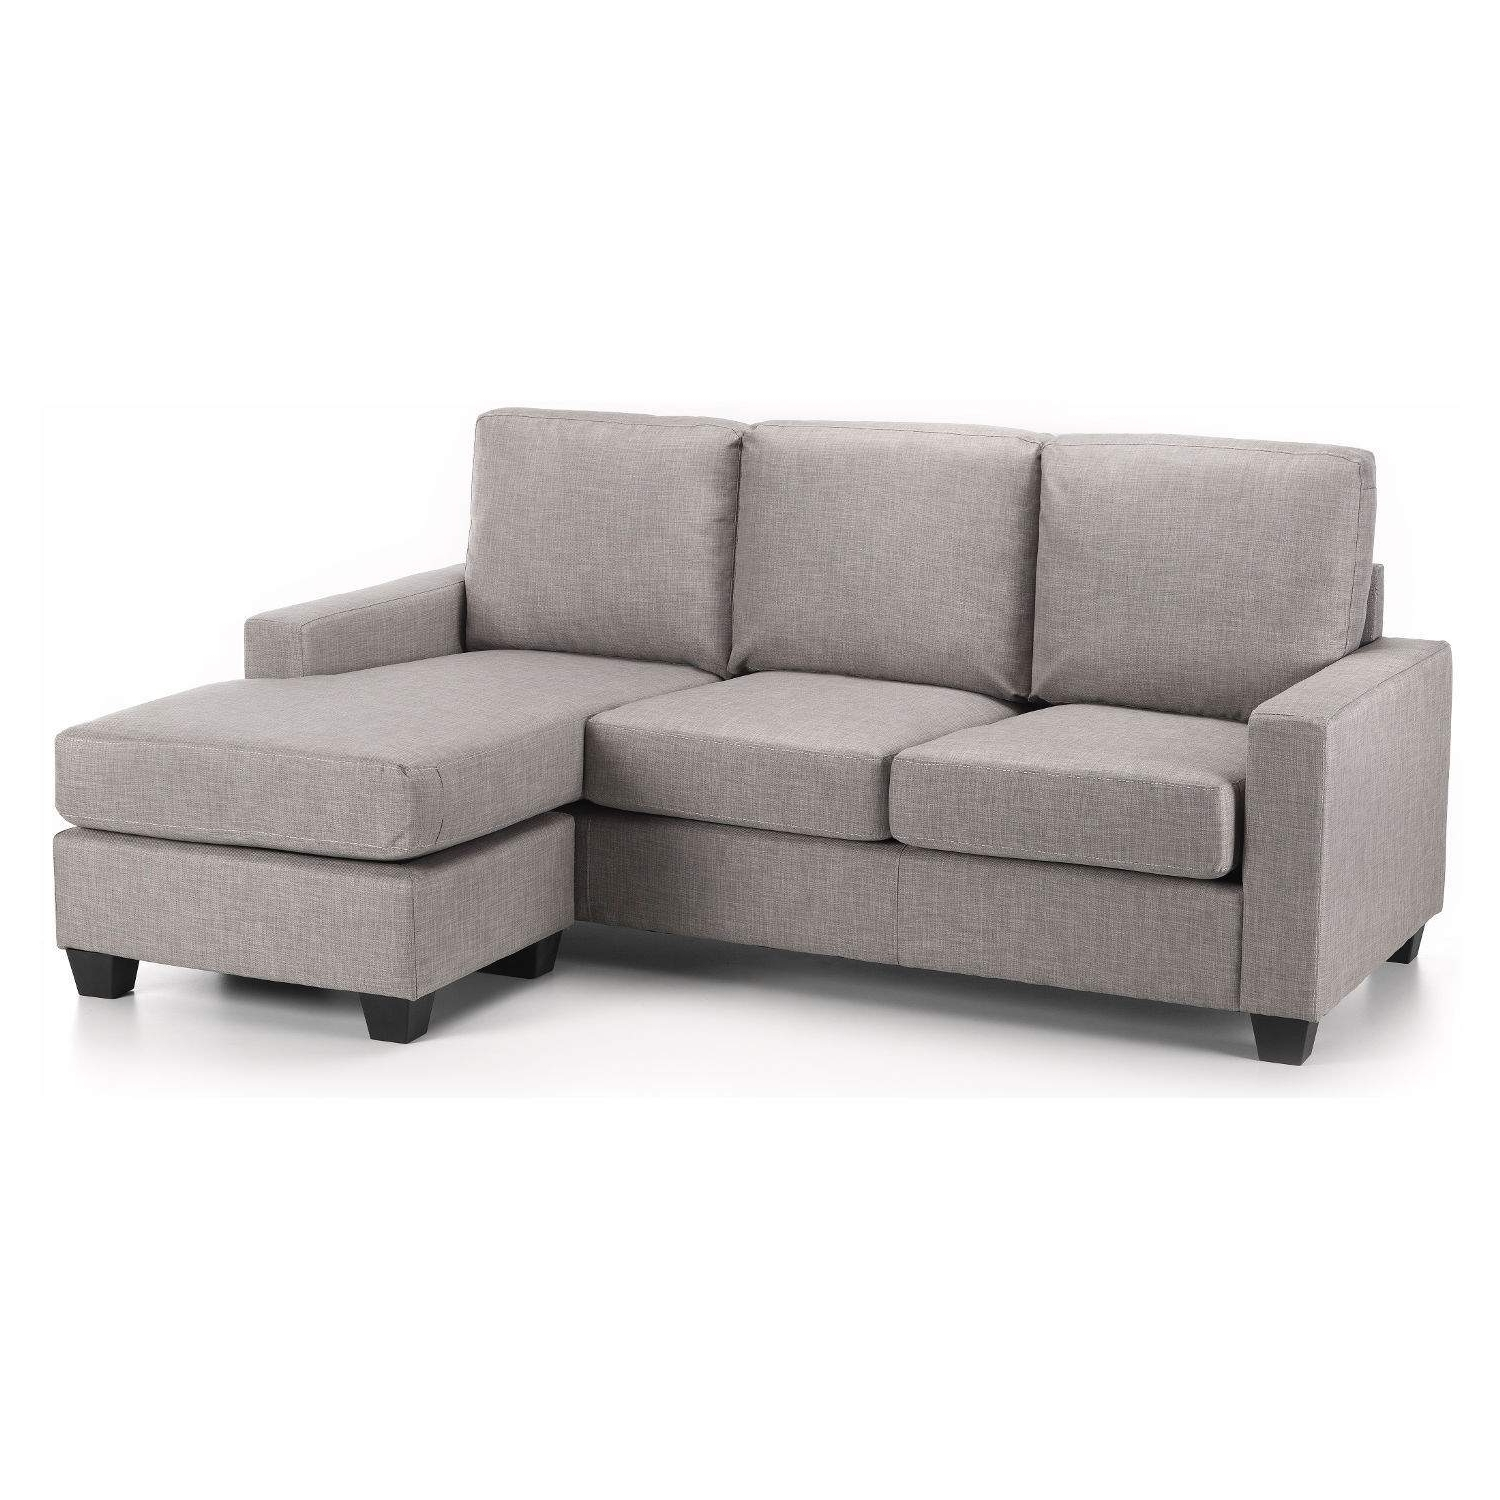 Eo Furniture In Fabric Corner Sofas (View 7 of 20)